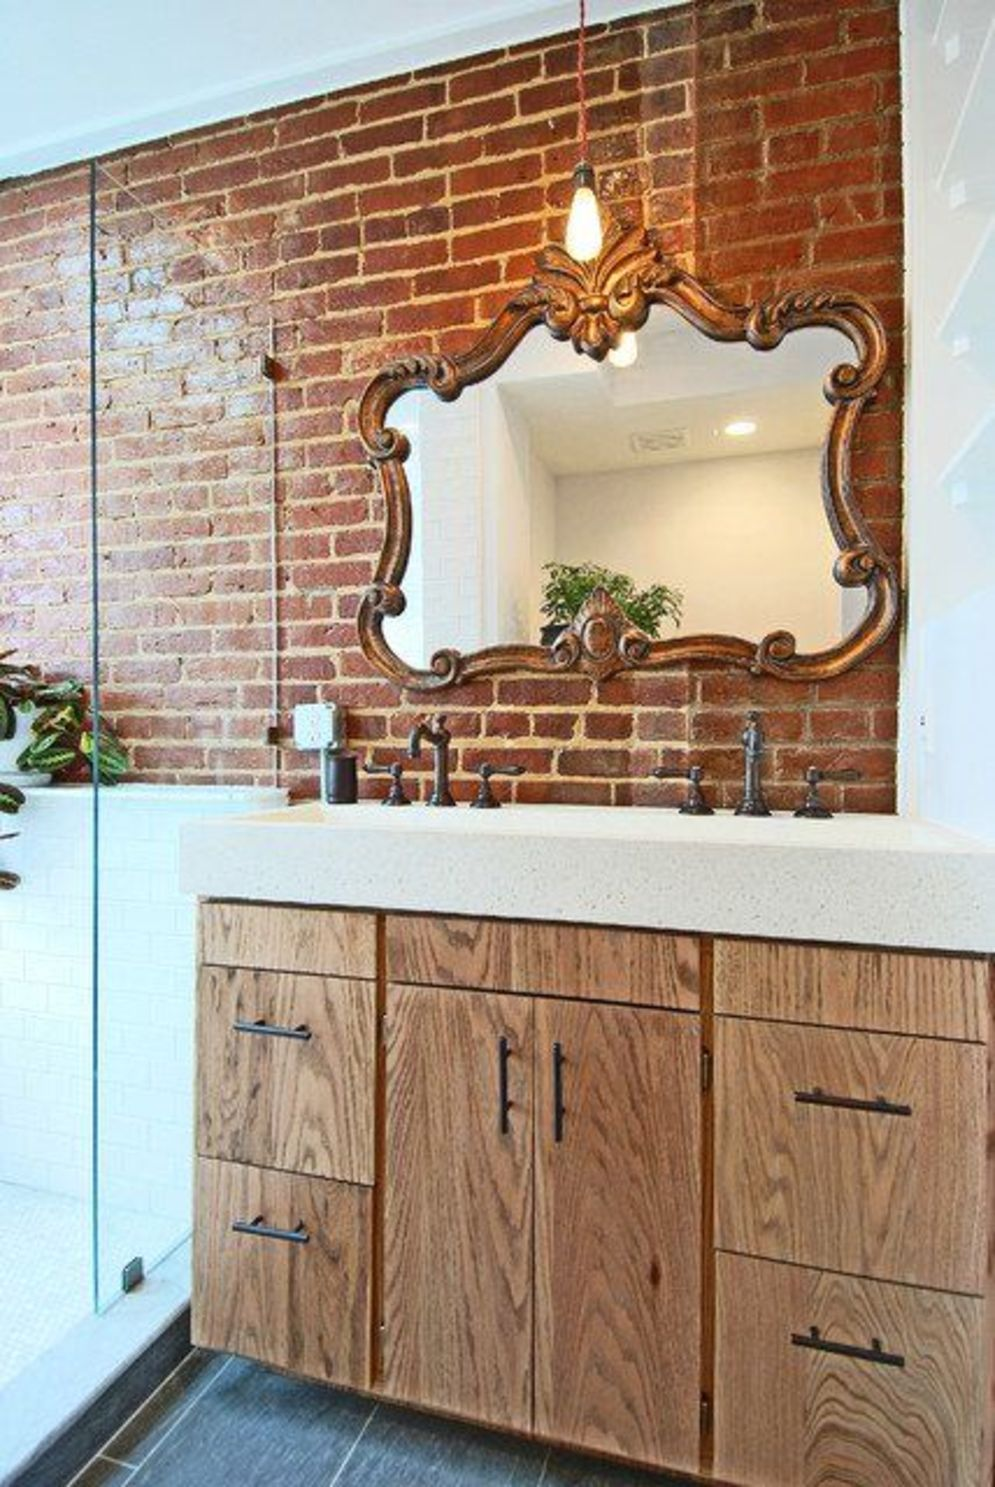 Cozy bathroom update adapting brick wall accents showing charm and friendly finish Image 12